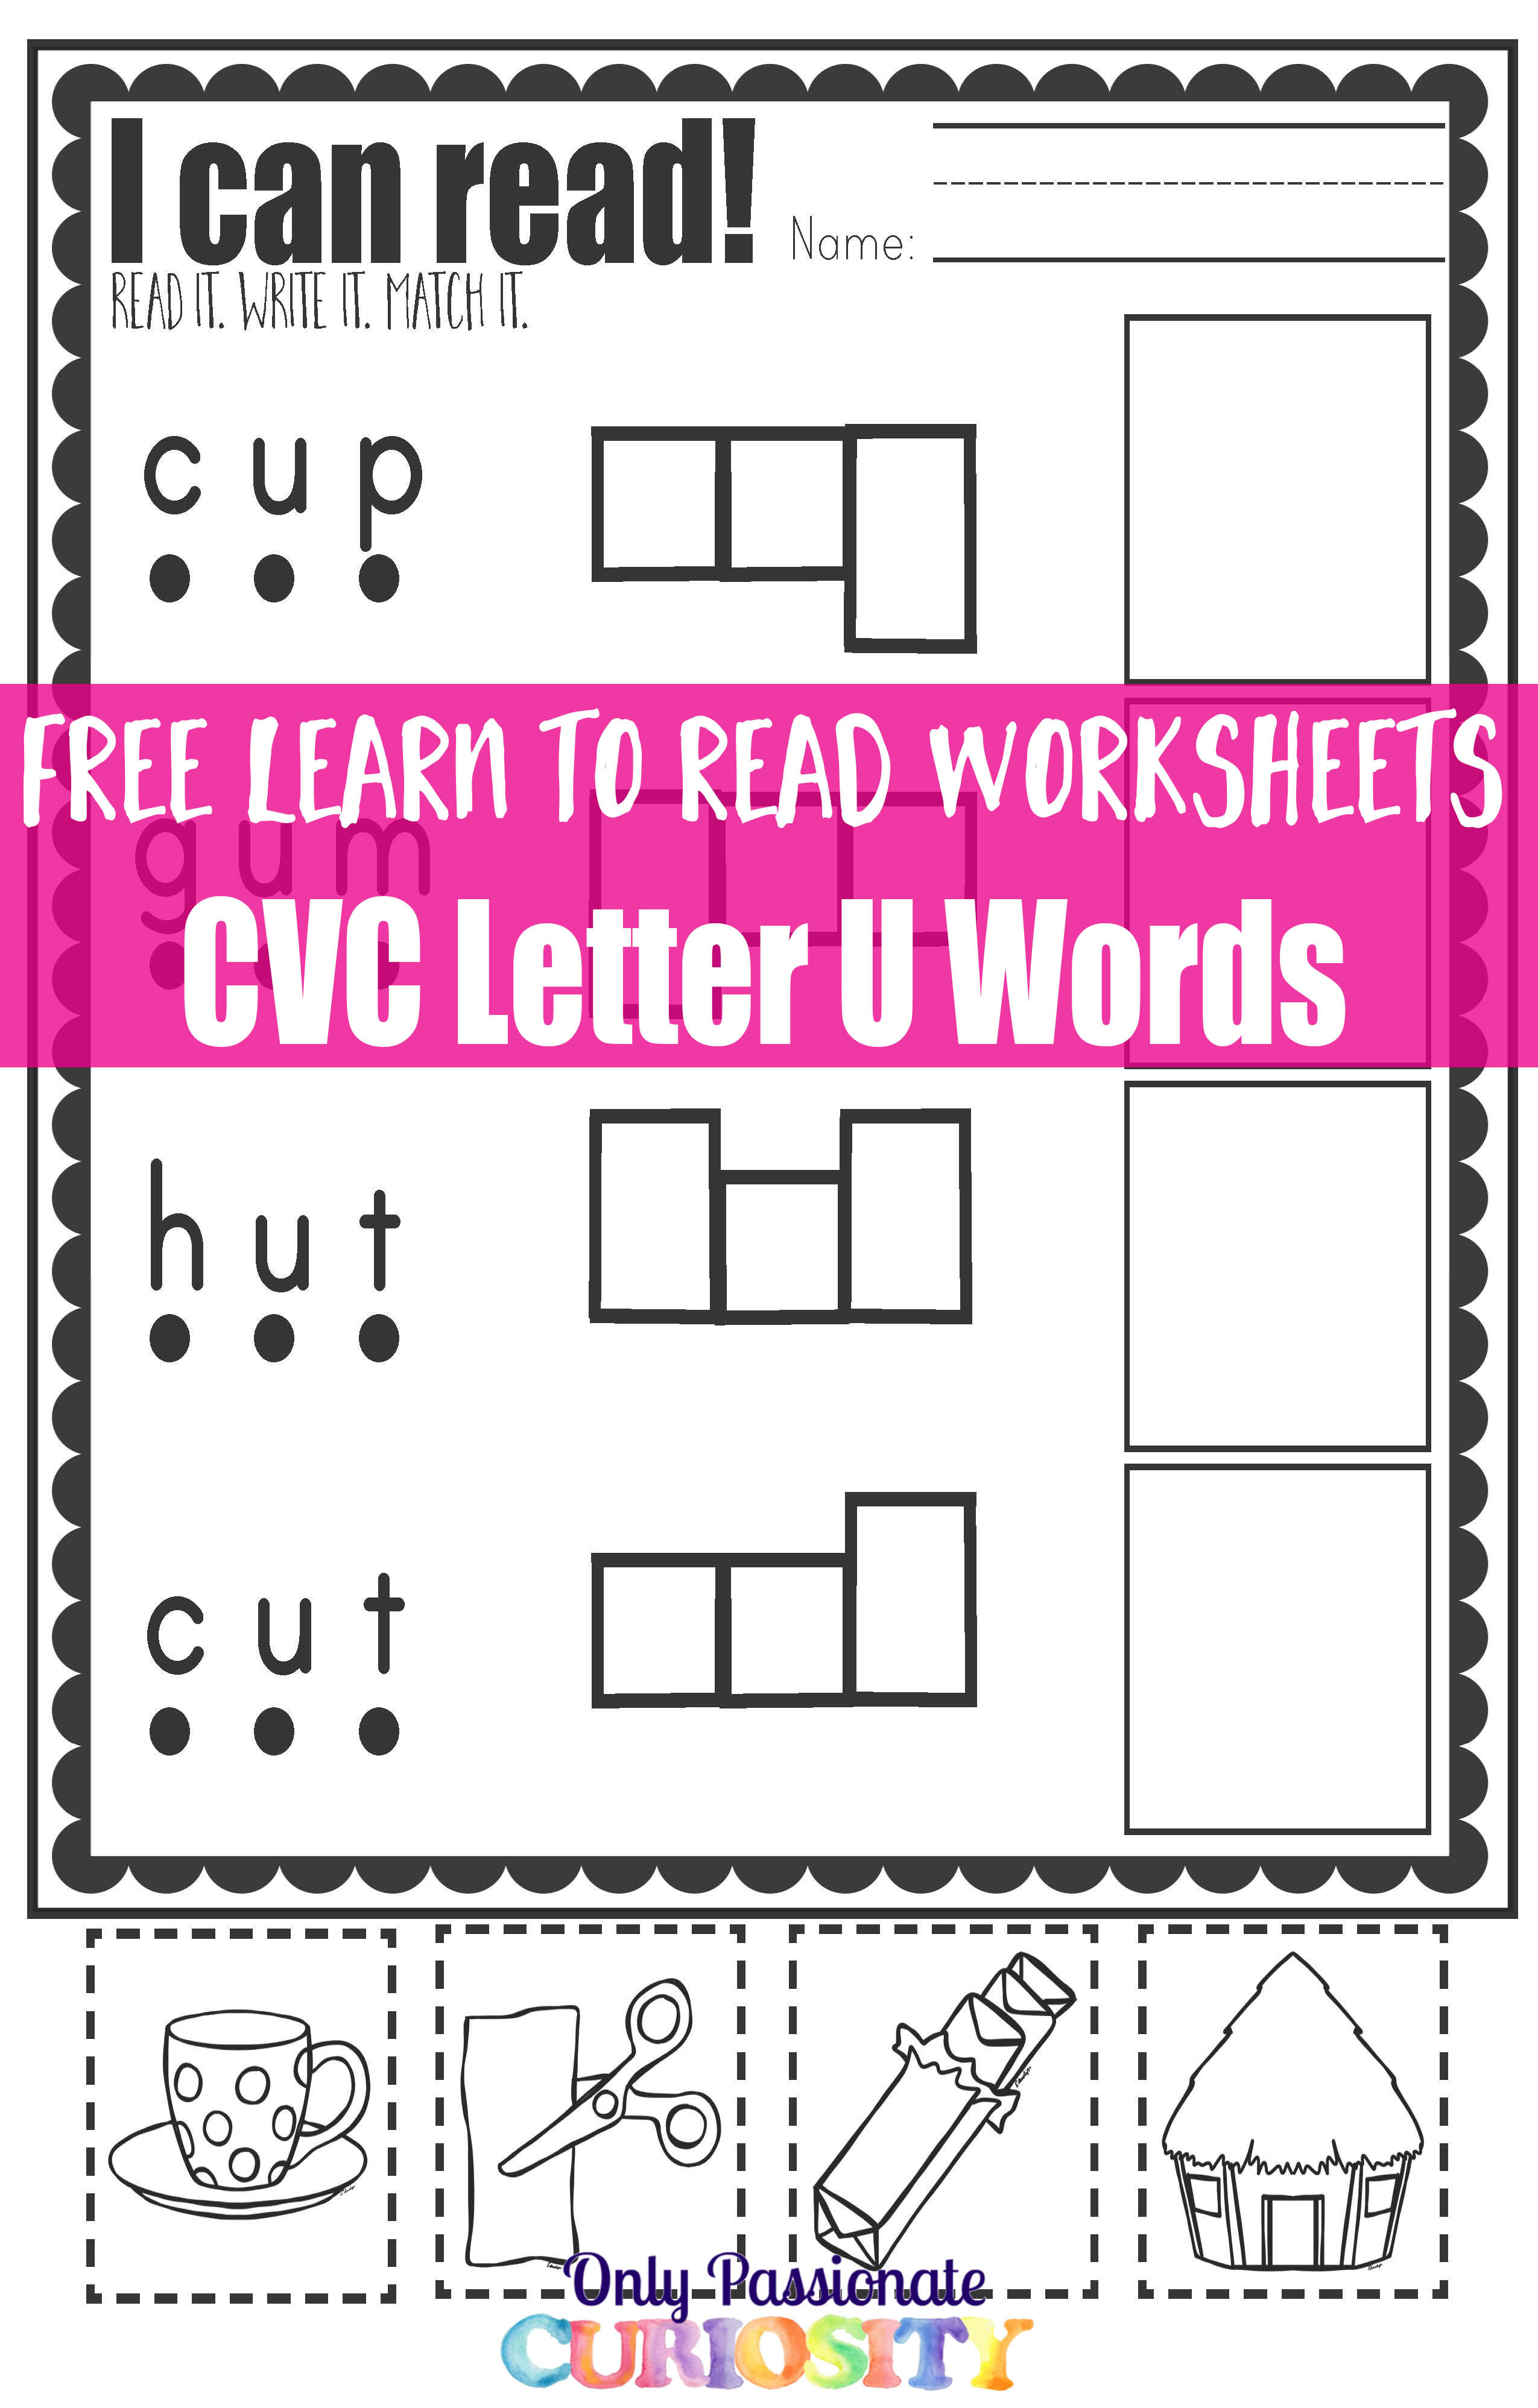 Cvc Worksheets Cut And Paste Letter U Only Passionate